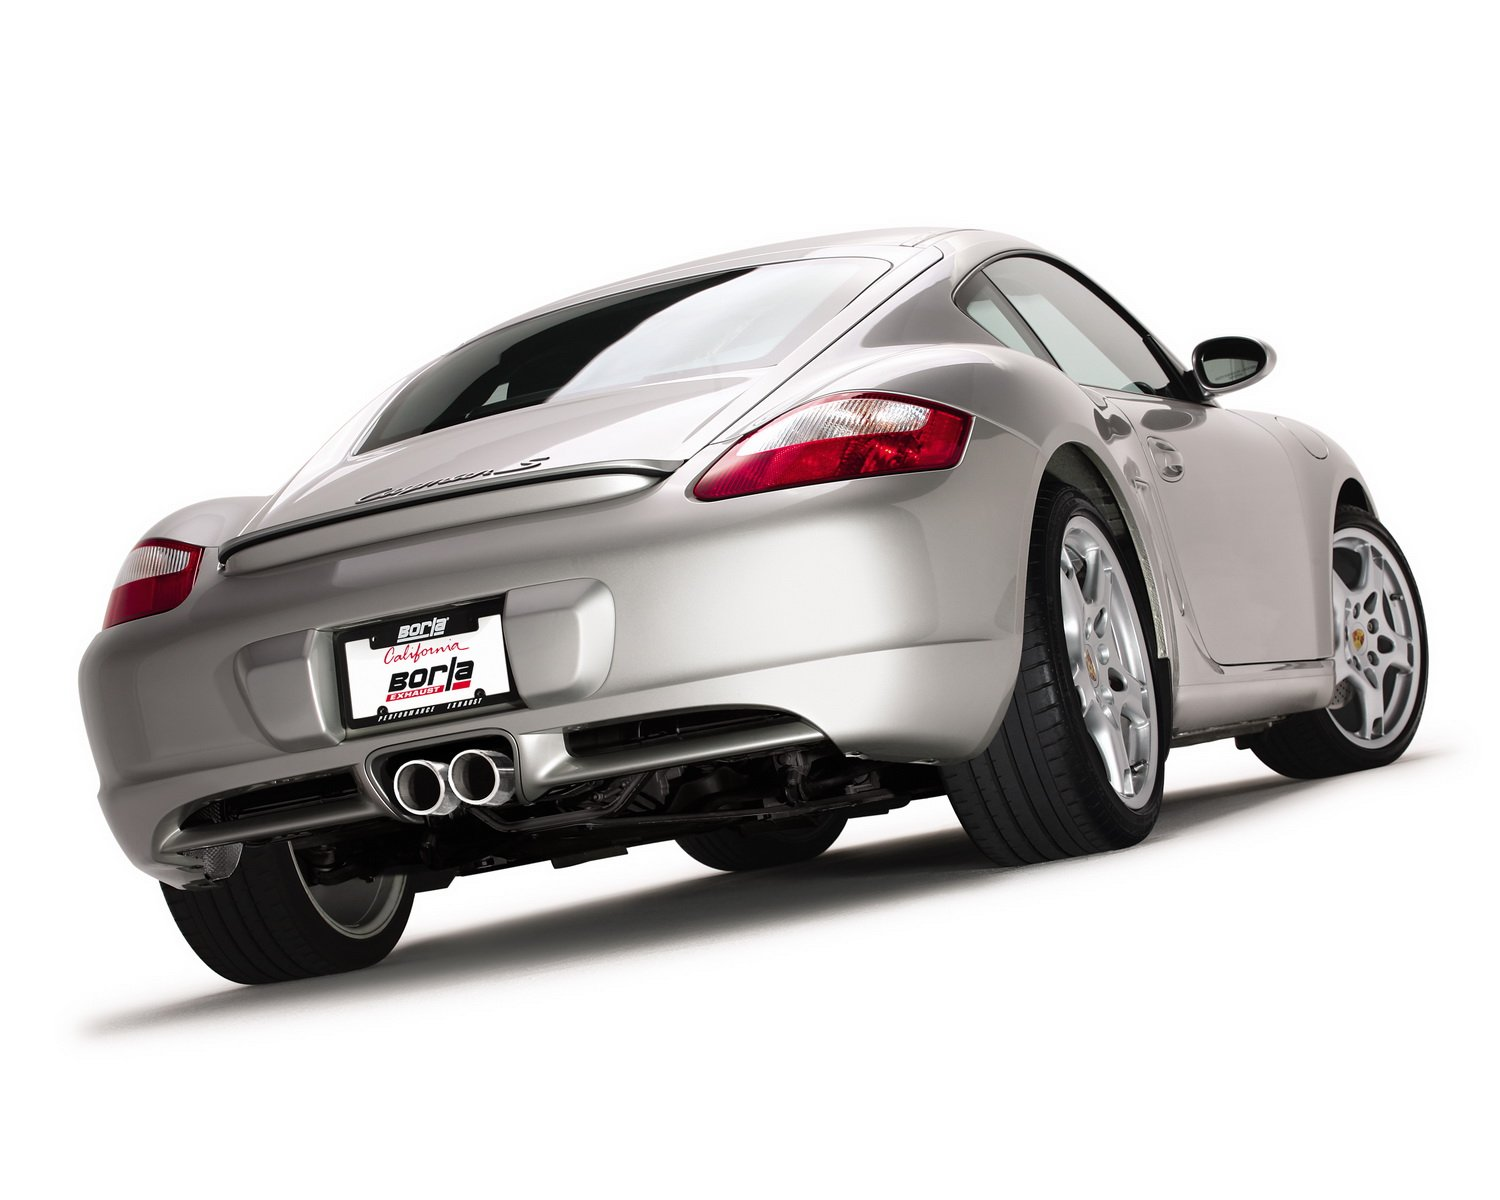 Borla 12654 Cat-Back Exhaust System CAYMAN//CAYMAN S//BOXSTER S 05-08 3.4L 6CYL AT//MT RWD 2DR